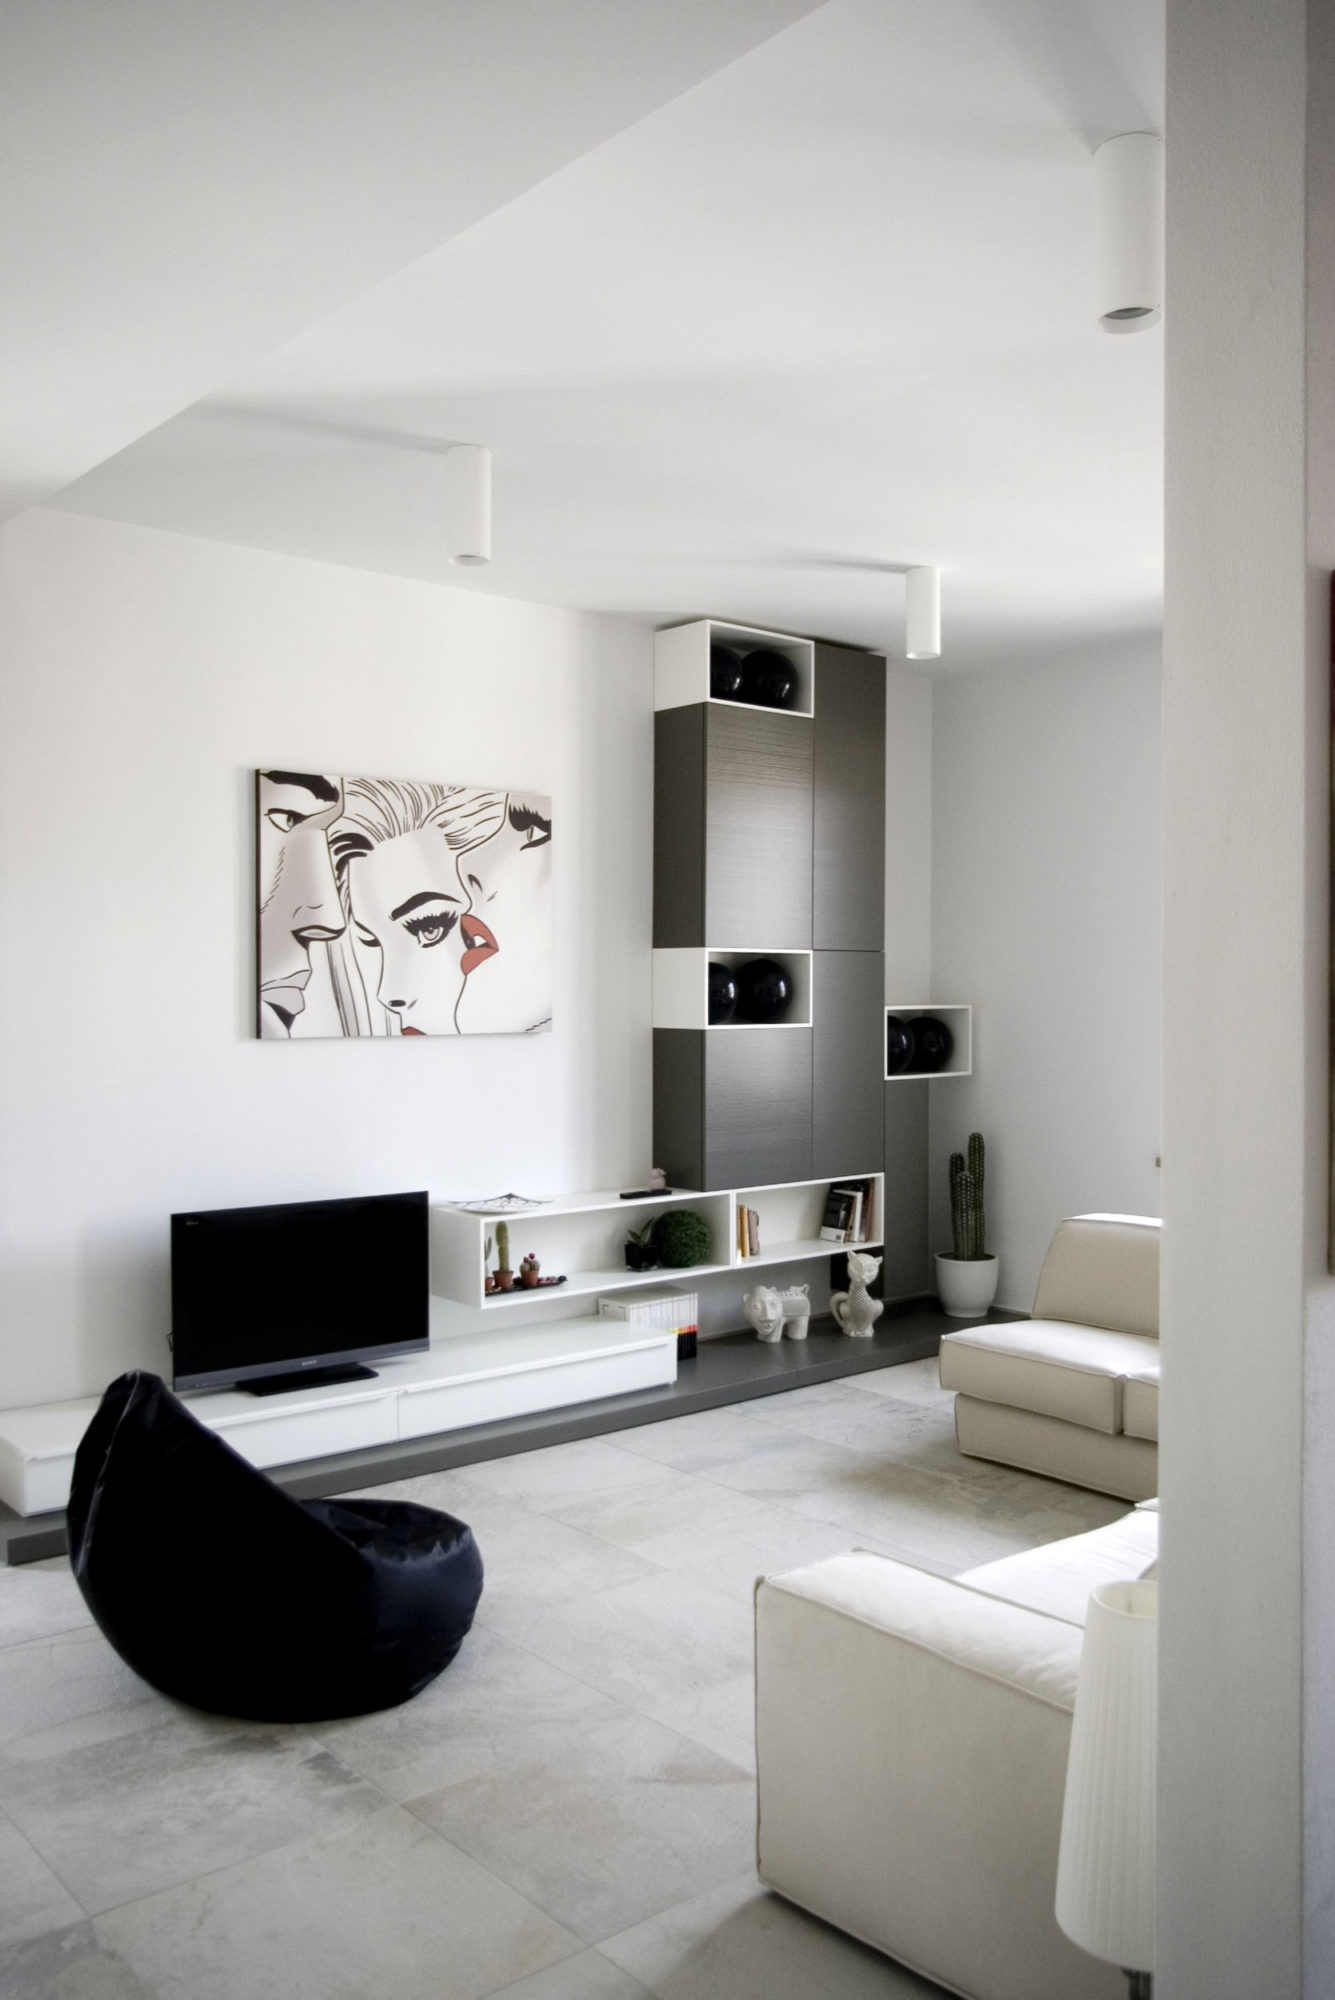 Minimalist interior by msx2 architettura for Minimal housing